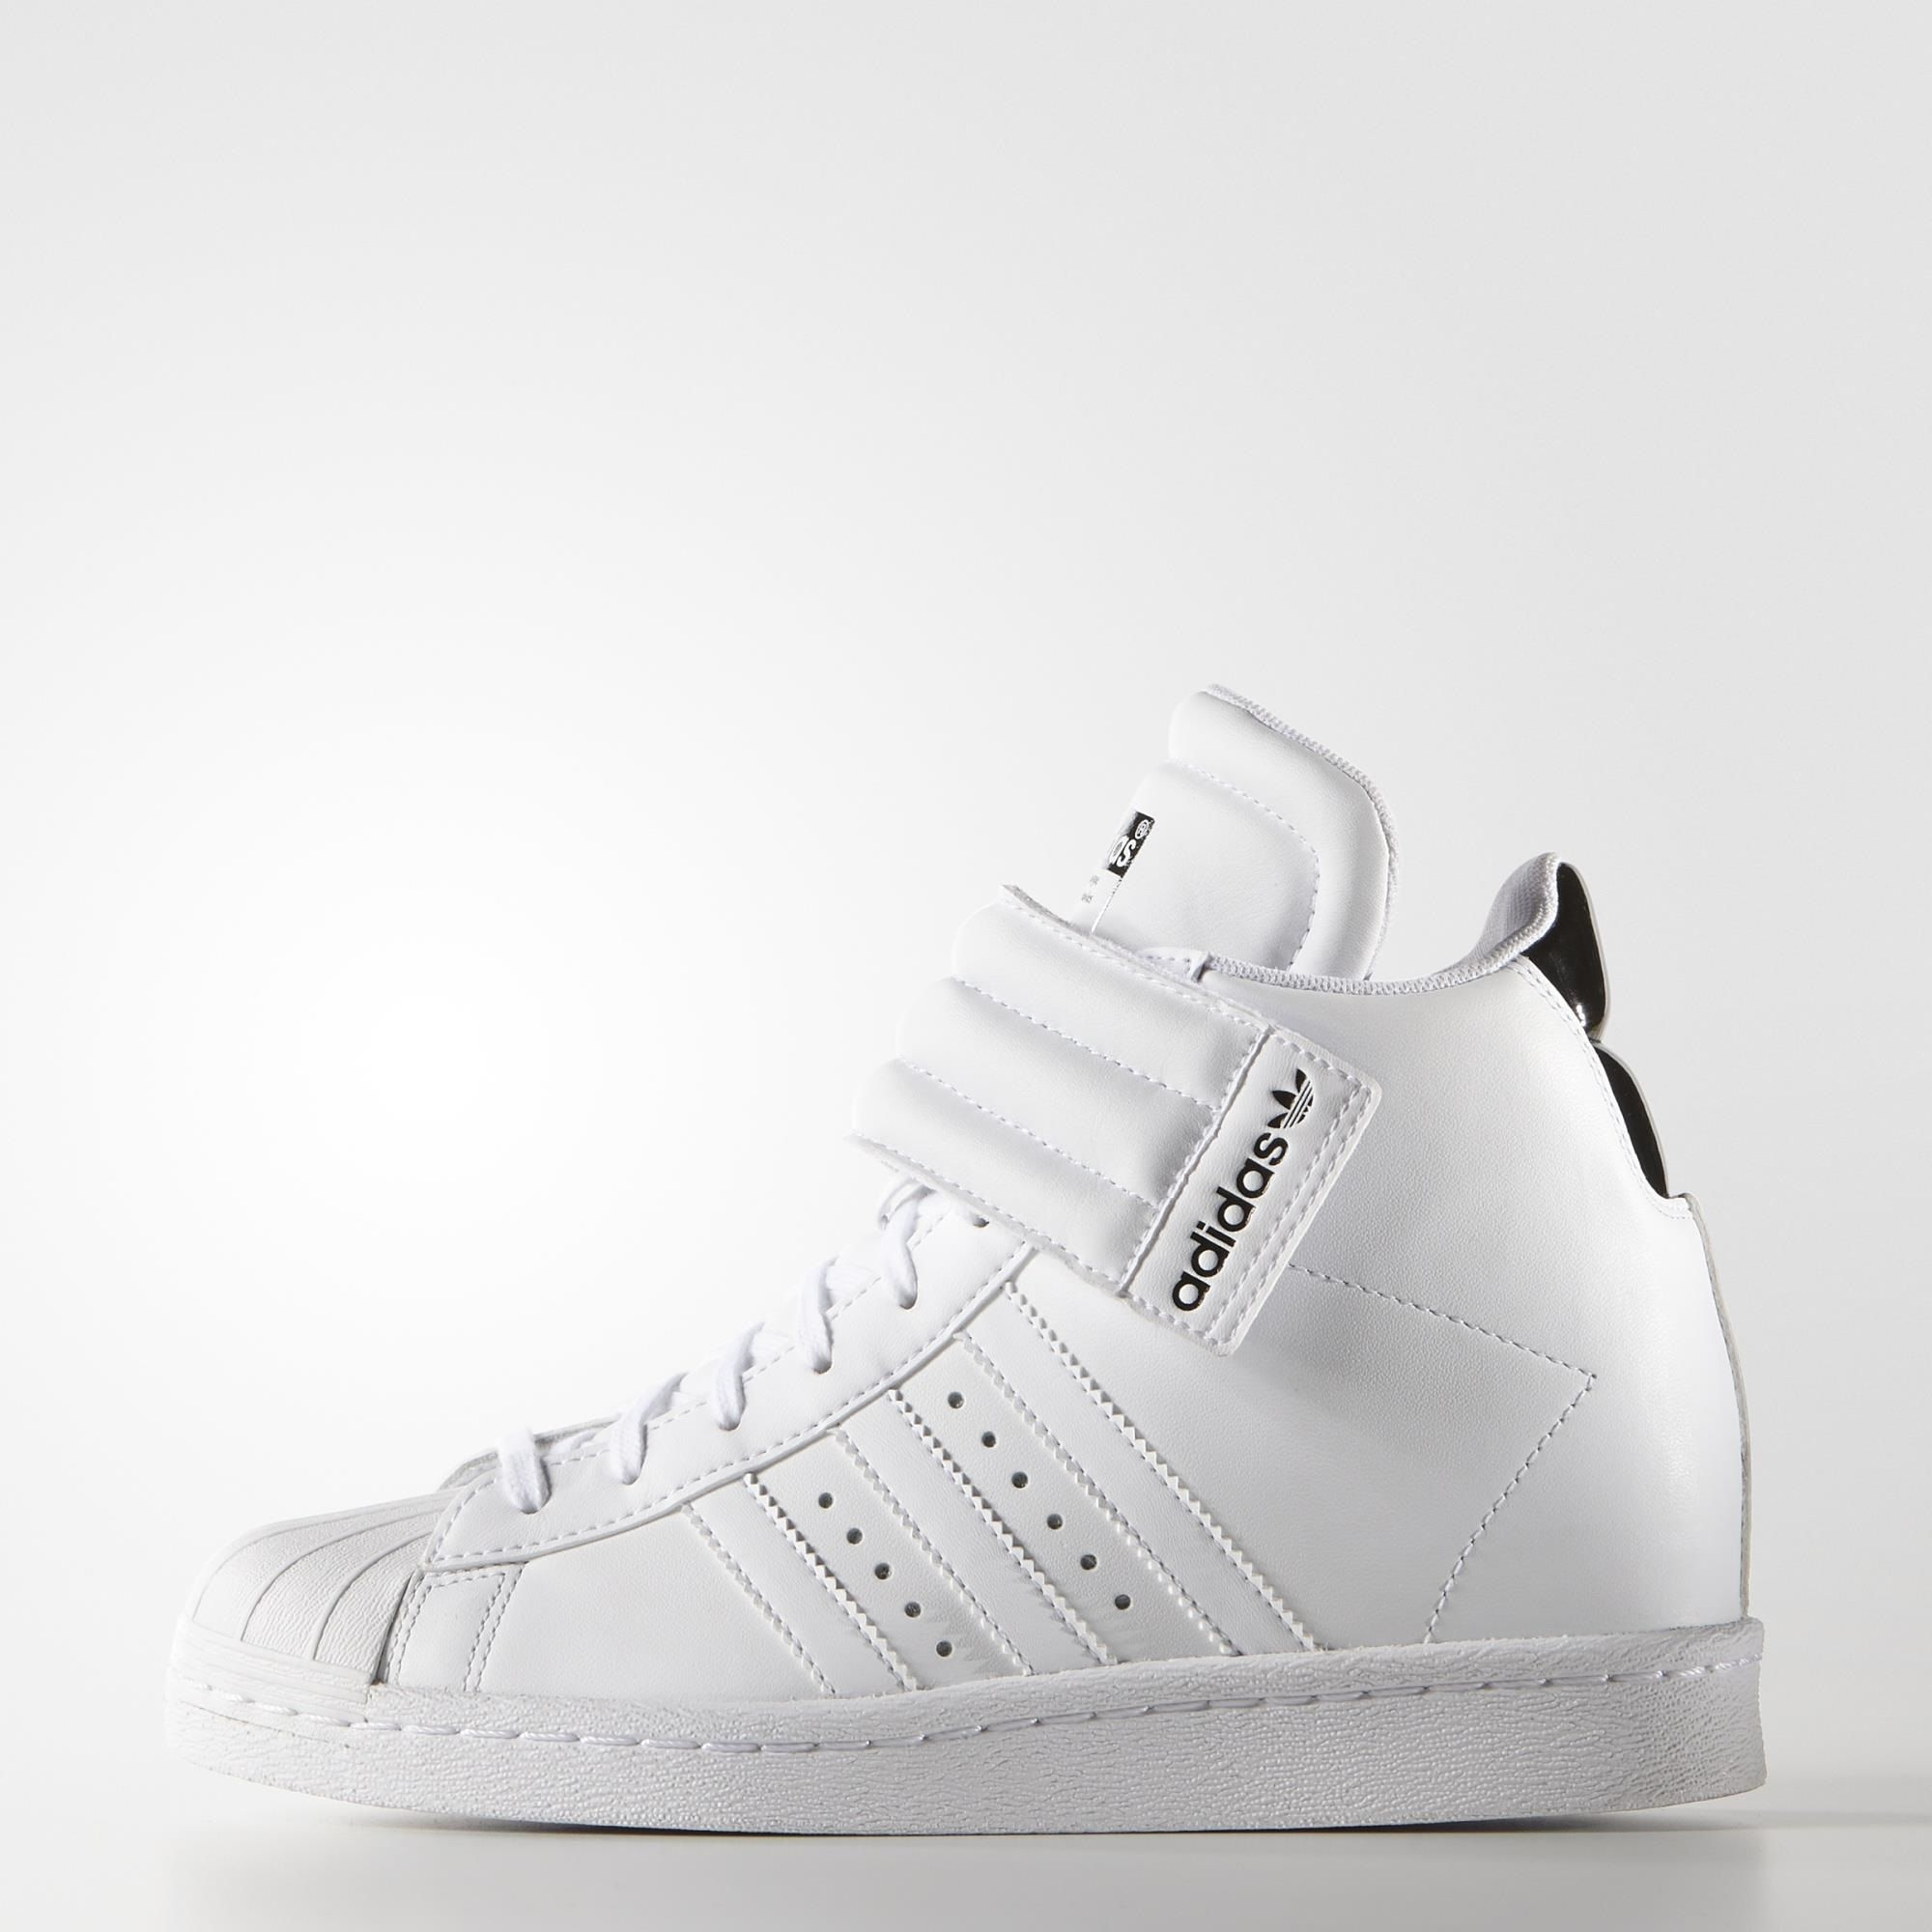 wholesale dealer ff21a 4f16a adidas Superstar Up Strap Shoes - White // adidas US ...